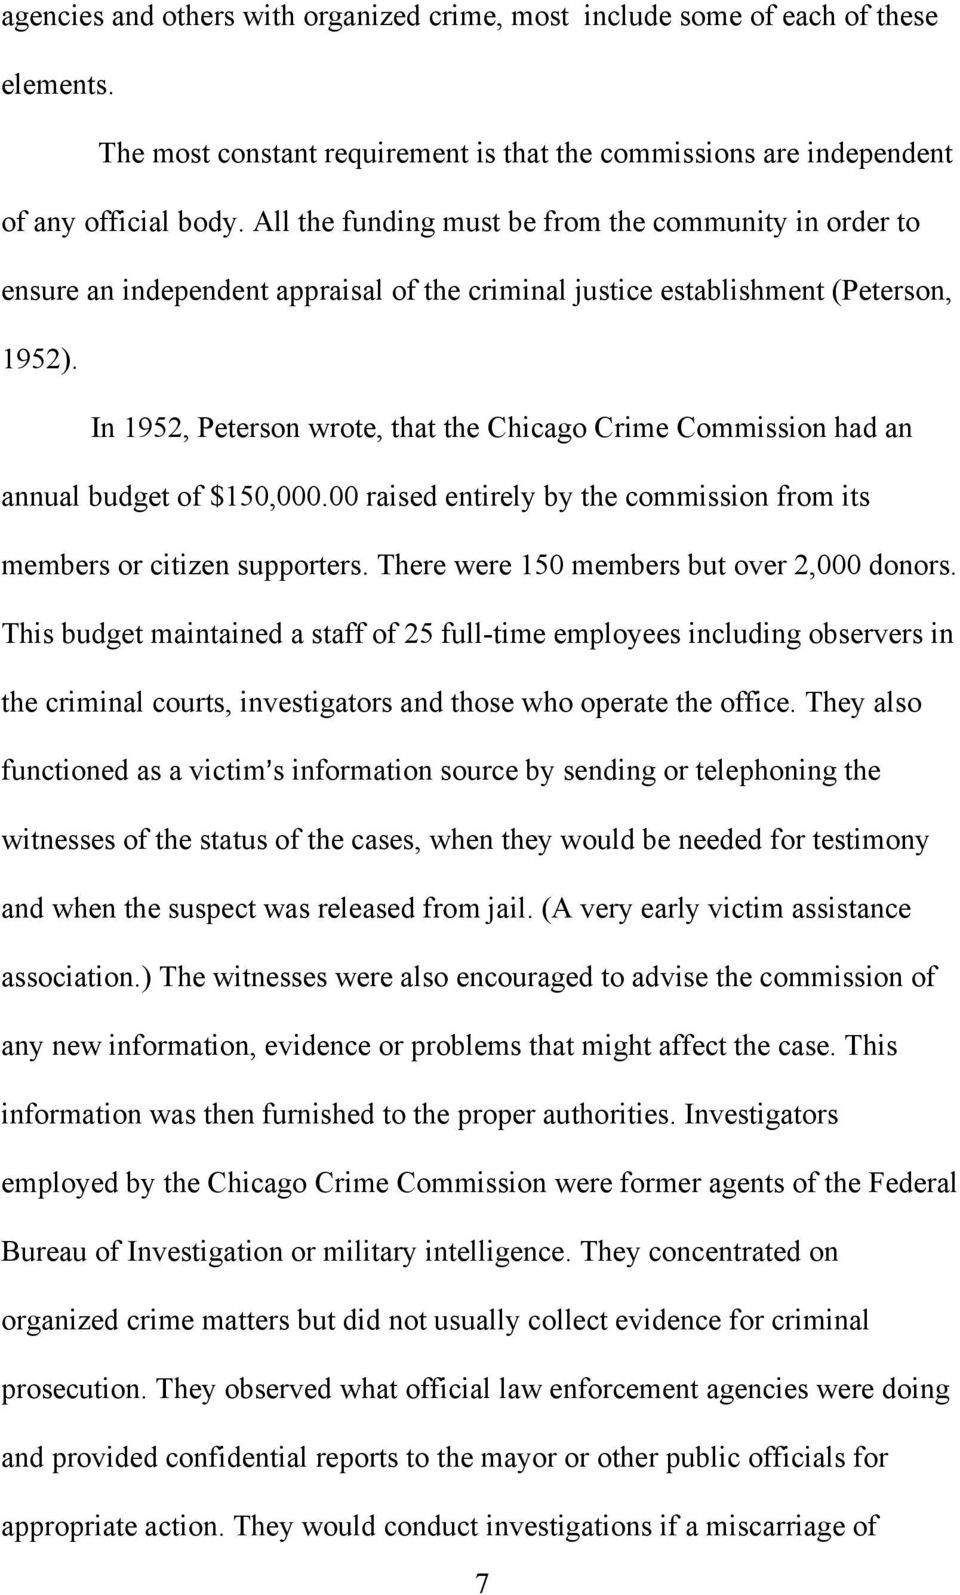 In 1952, Peterson wrote, that the Chicago Crime Commission had an annual budget of $150,000.00 raised entirely by the commission from its members or citizen supporters.